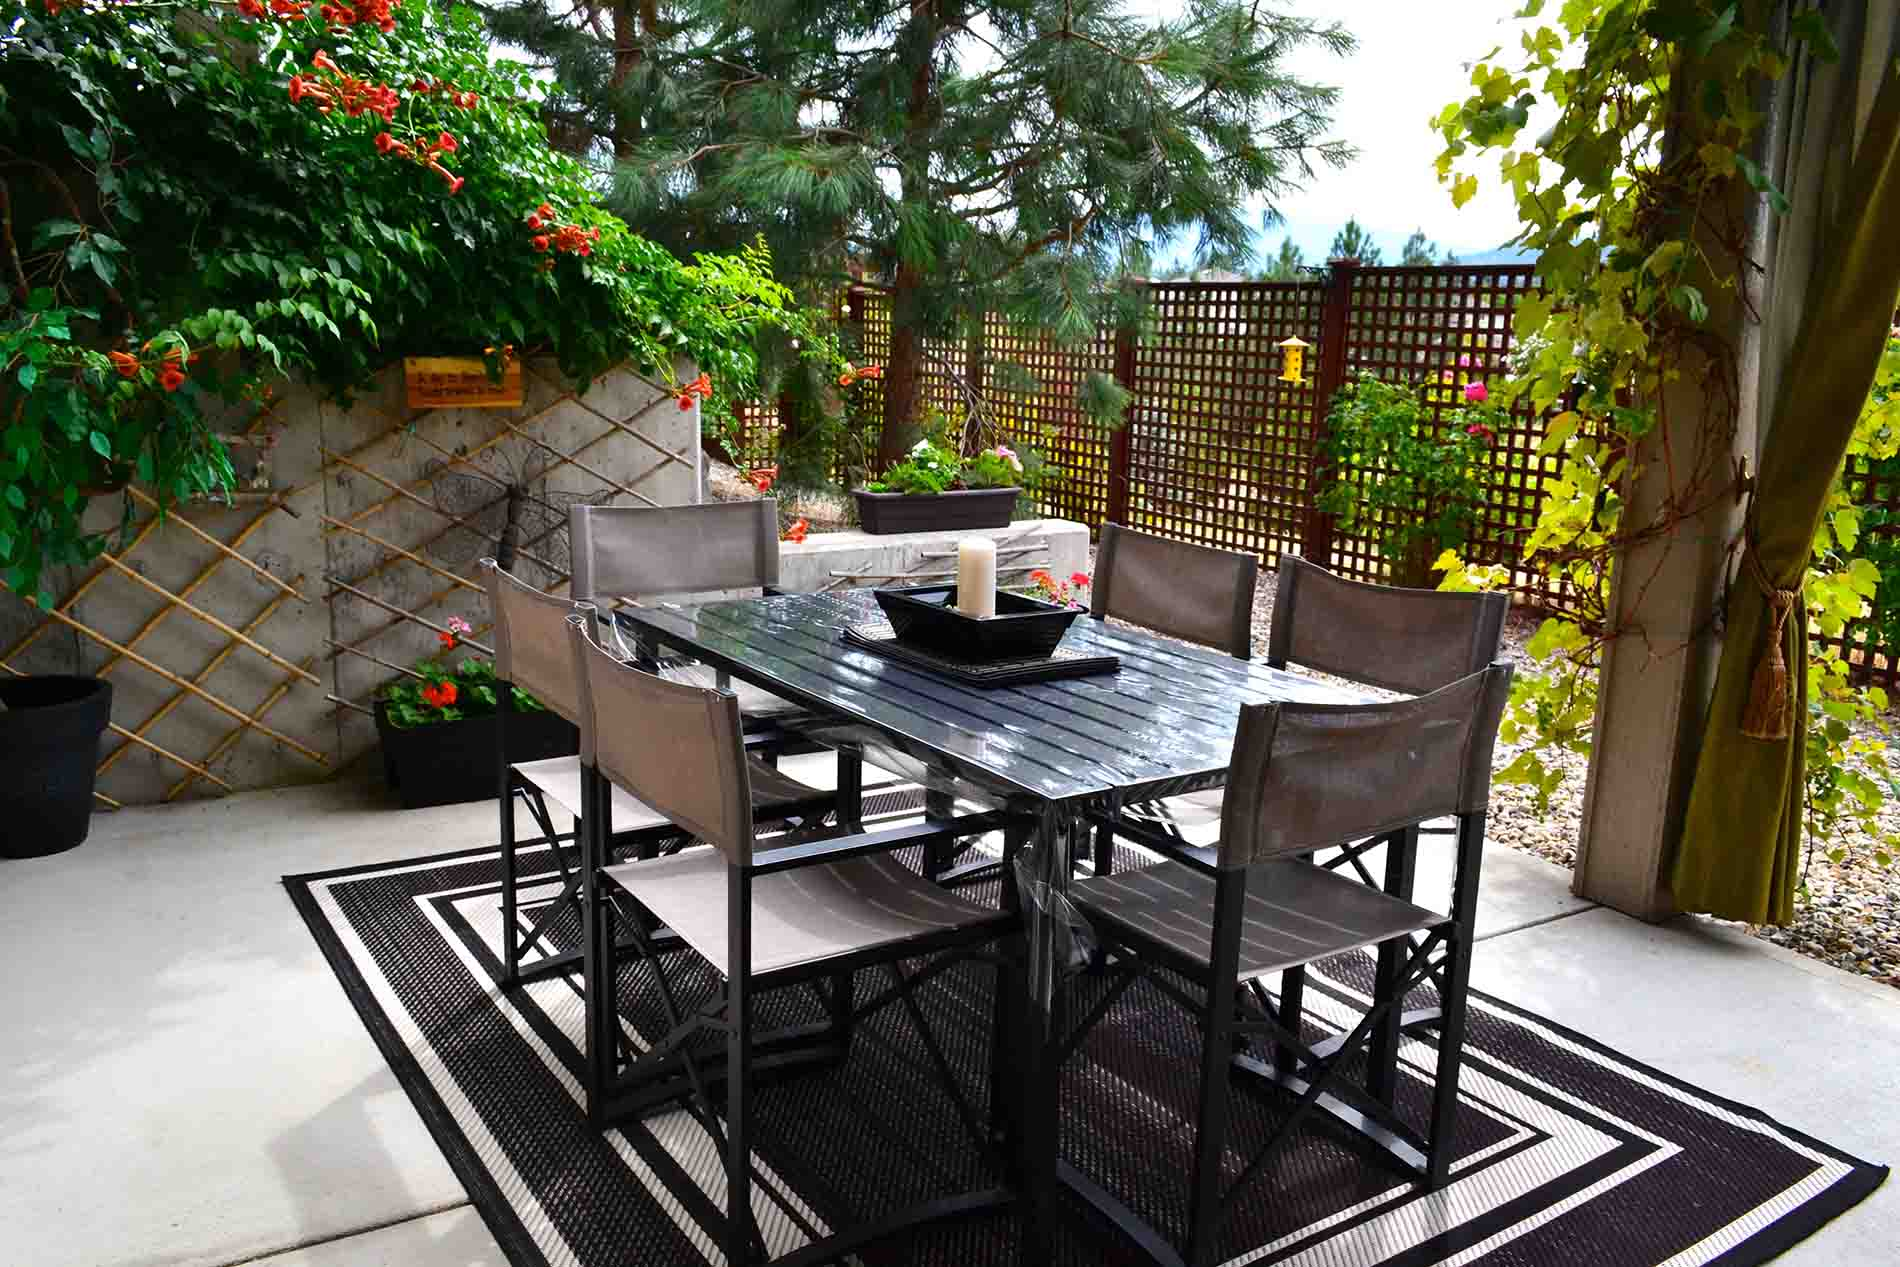 Patio Peachland Bed Breakfast Accommodation With Pool